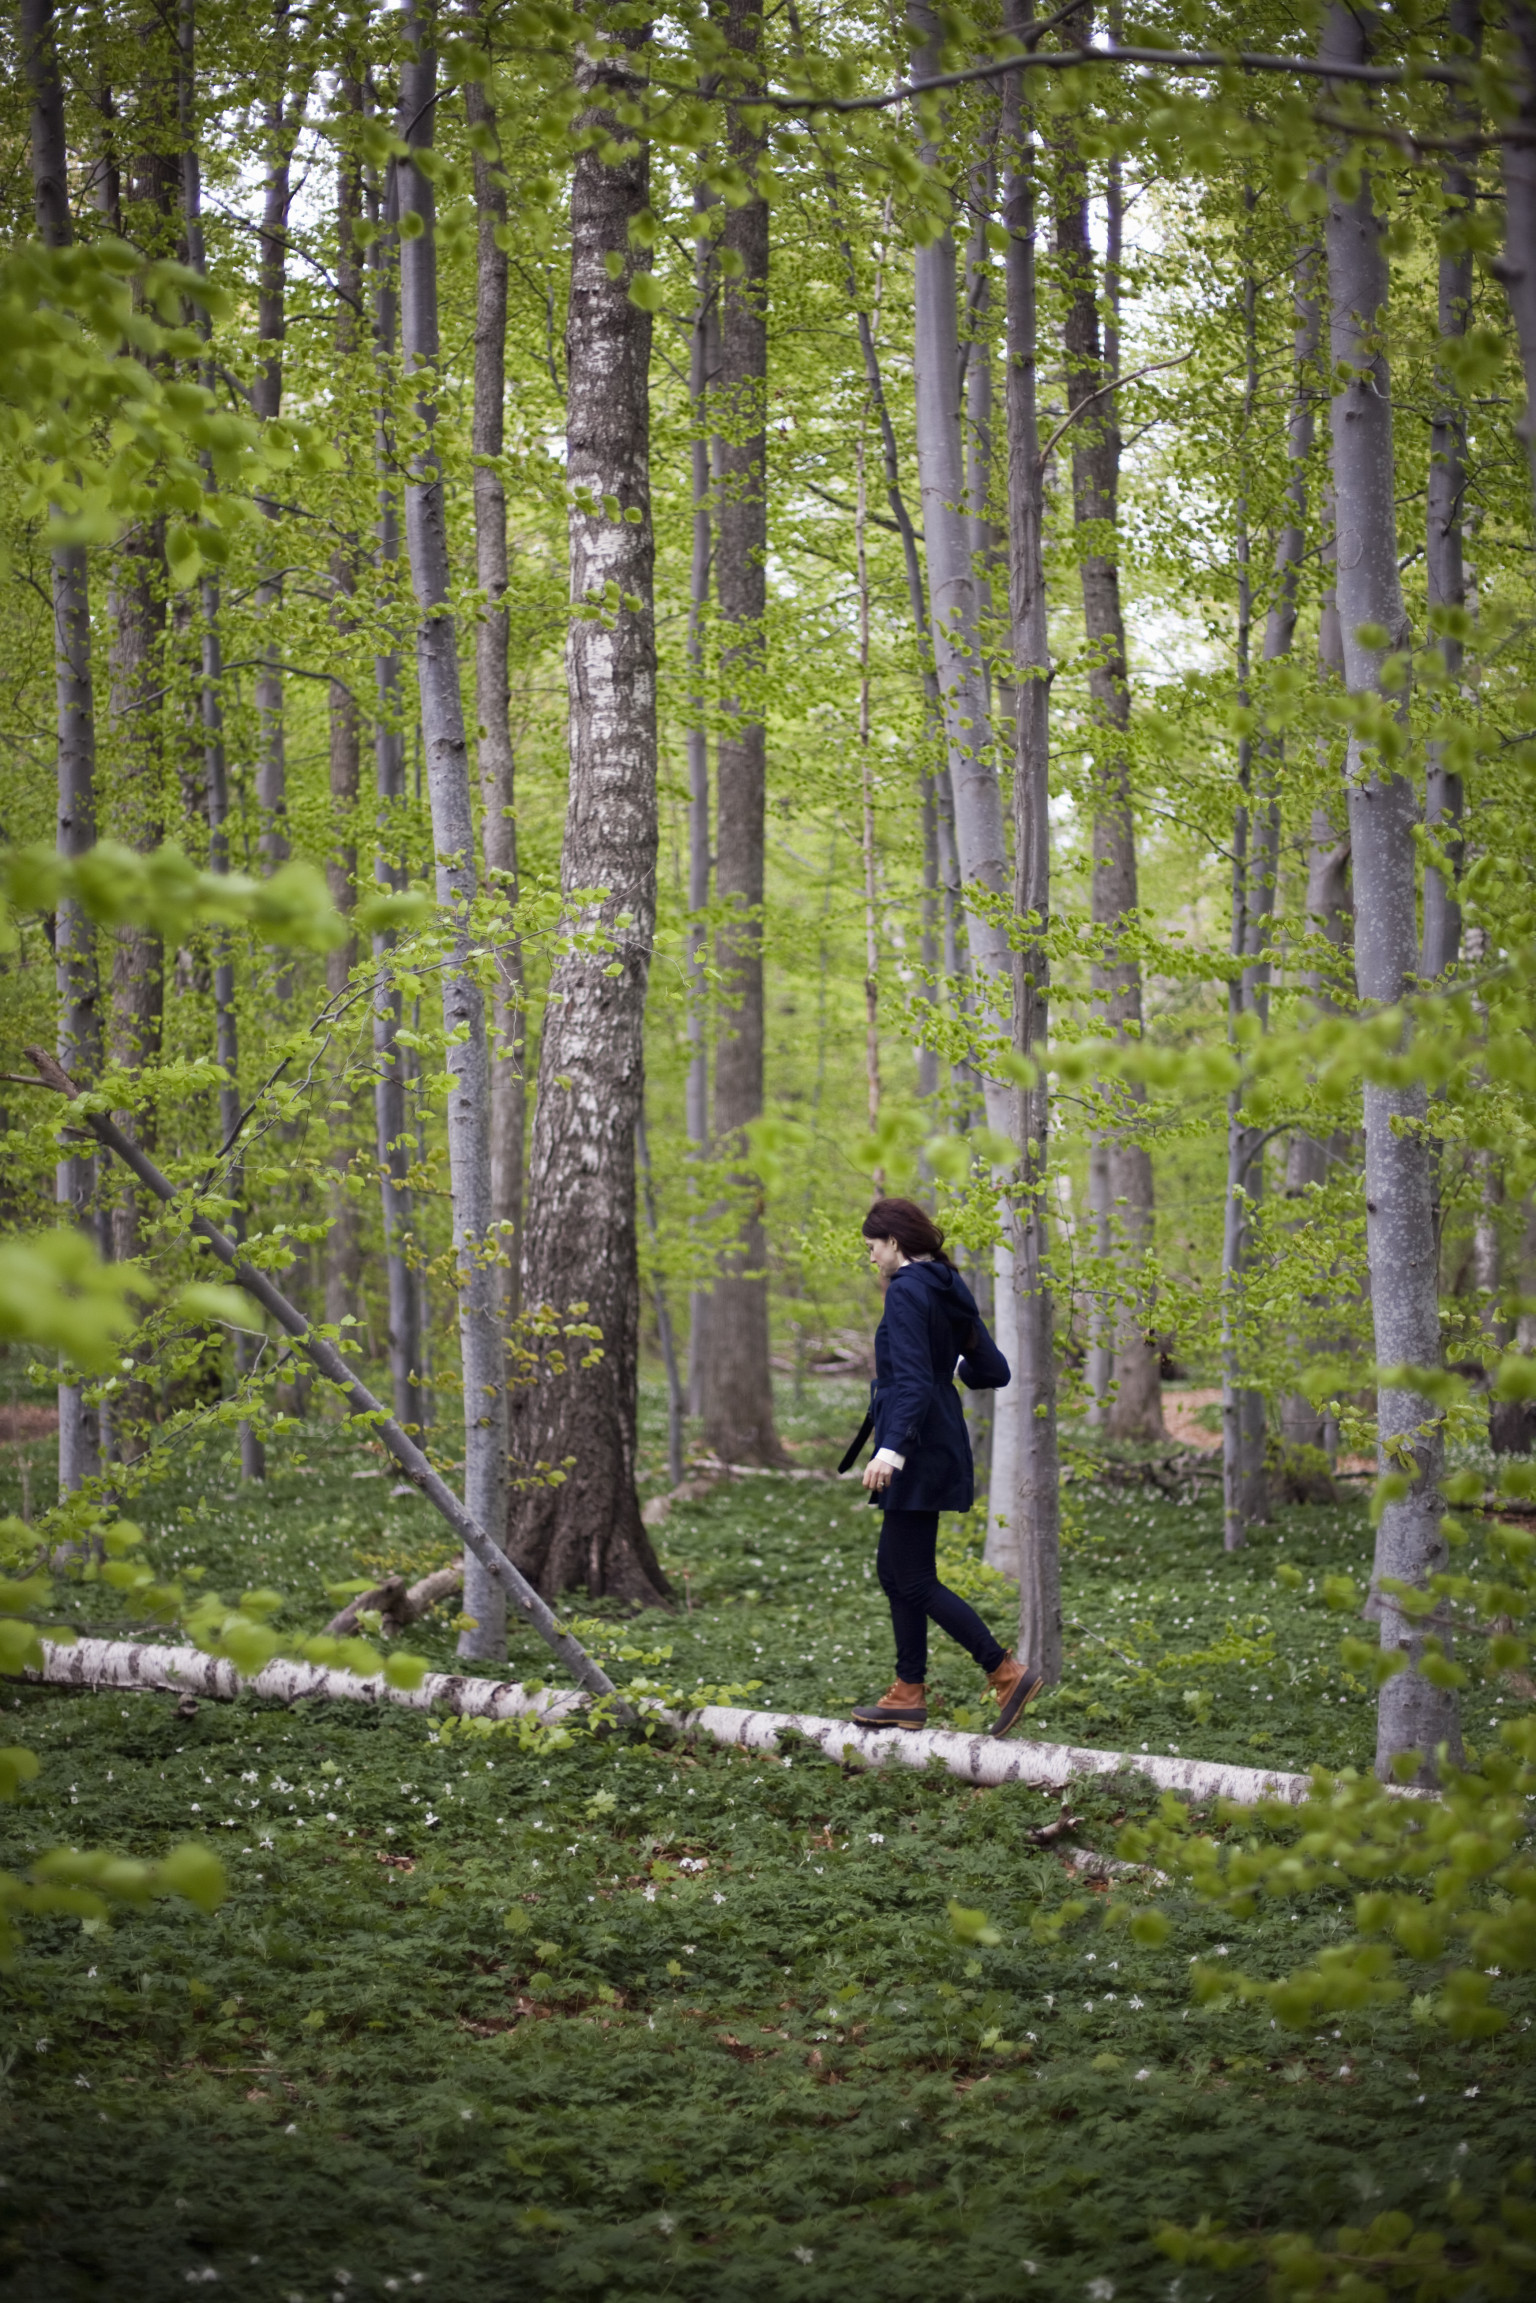 The Woods Wood Be Quiet If No Birds Sang Except The Best: Mindfulness In Everyday Life: A Walk In The Woods And